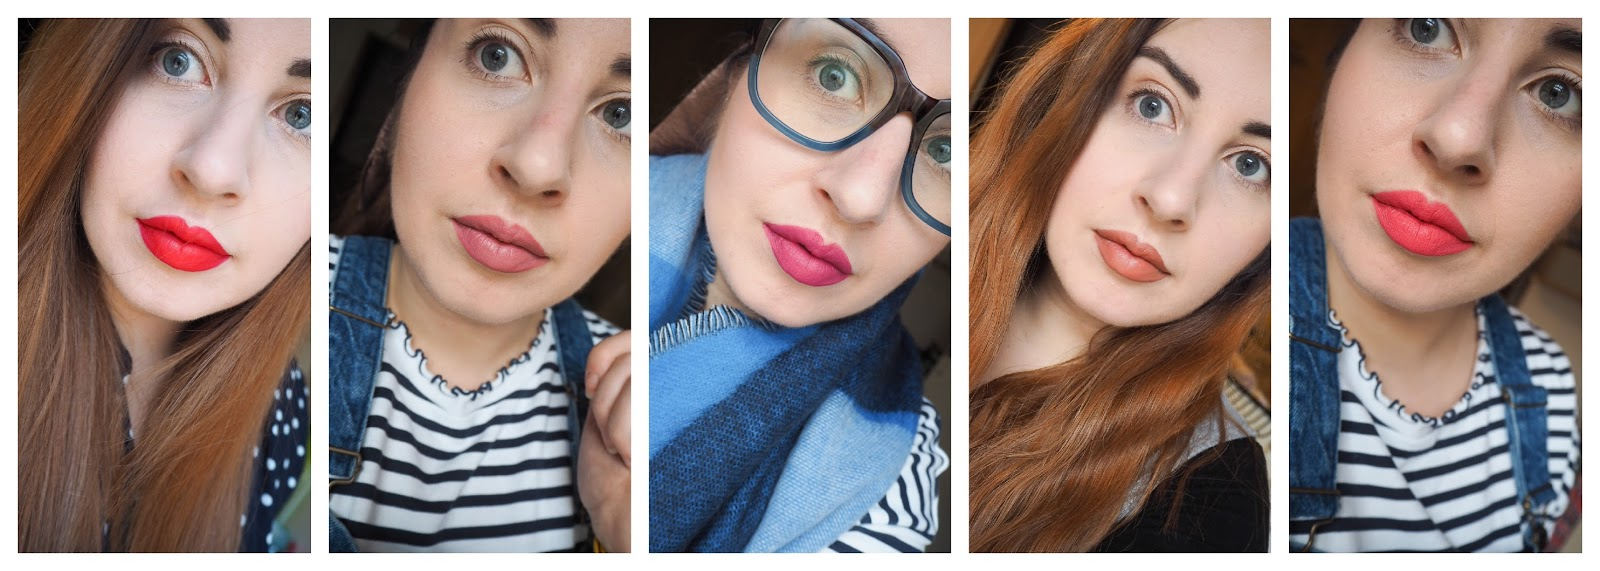 M&SBeauty: Autograph Colour Intense Liquid Lipstick + Swatches*